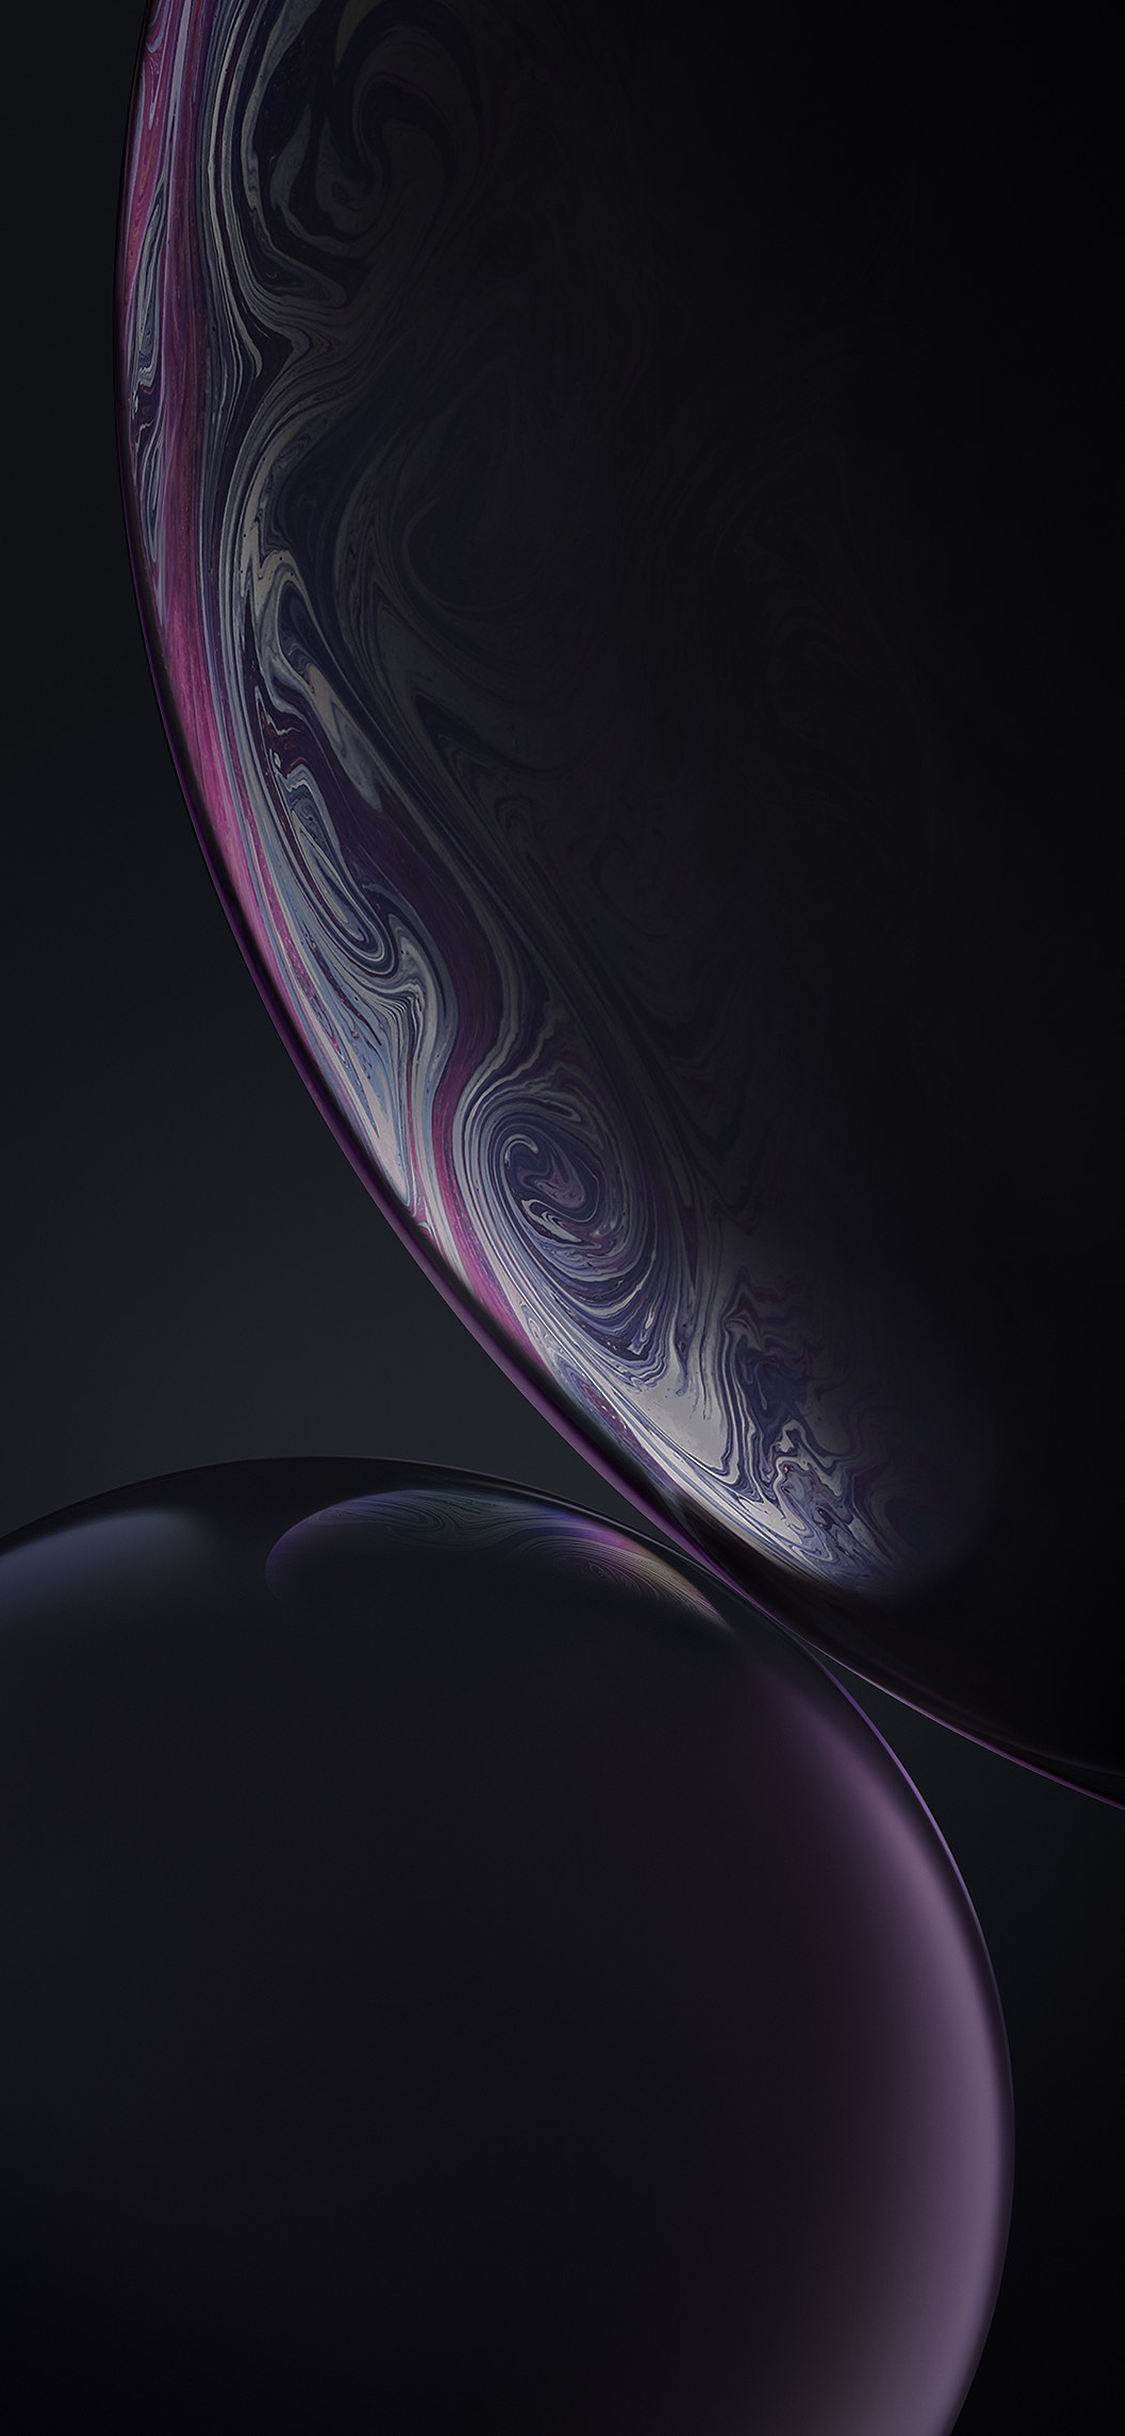 26 Iphone Xr 4k Wallpapers On Wallpapersafari